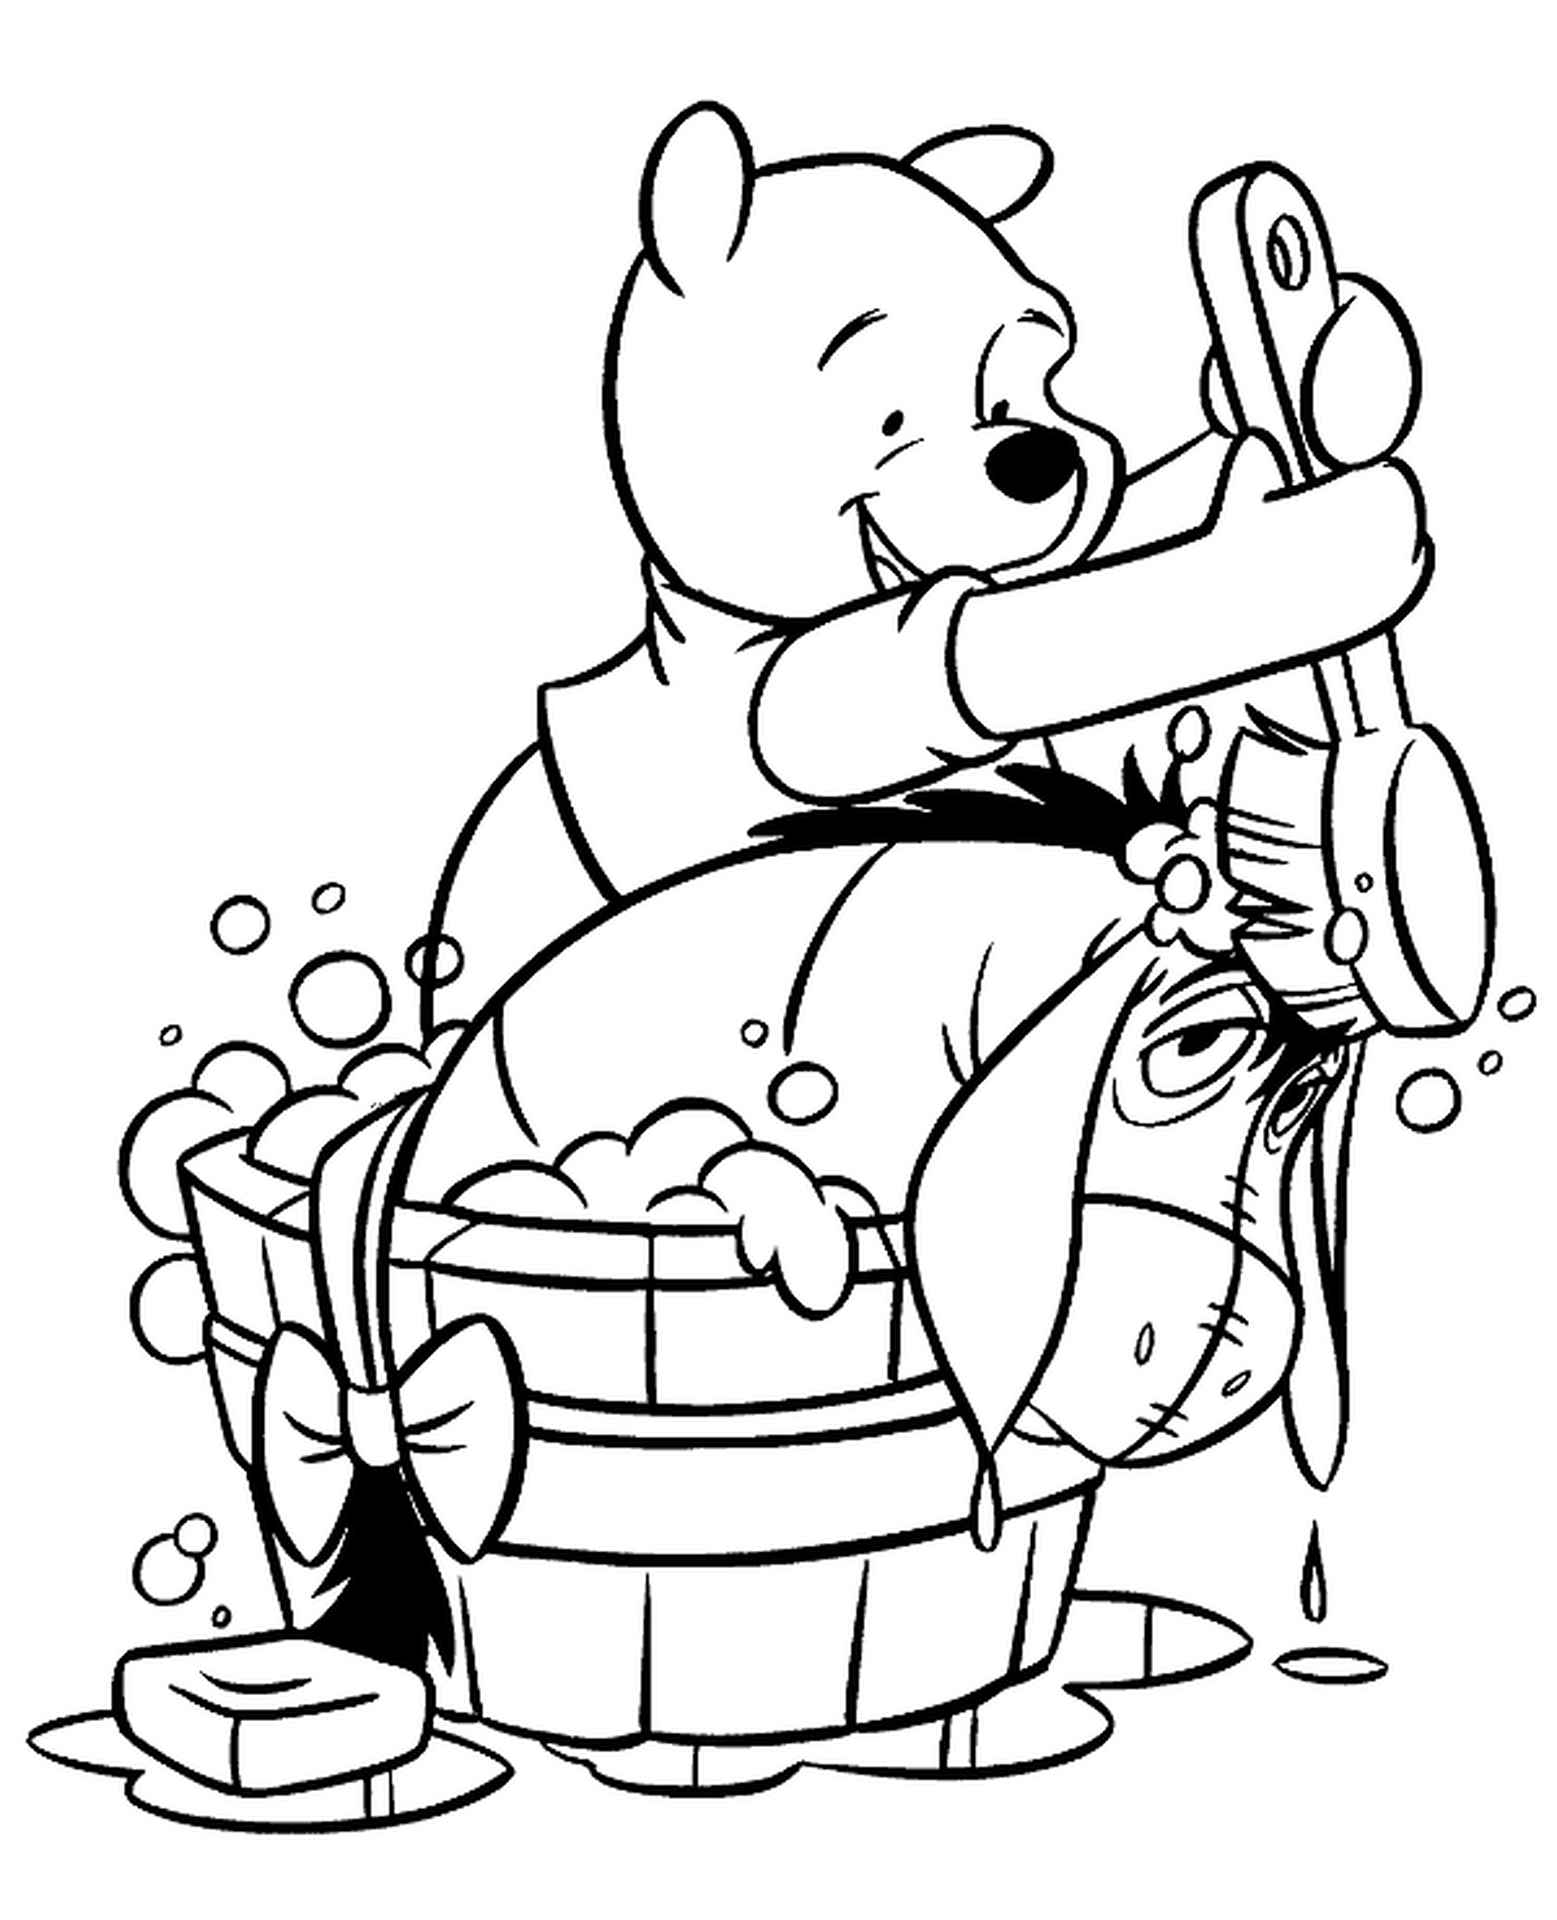 Winnie The Pooh And Eeyore Coloring Sheet